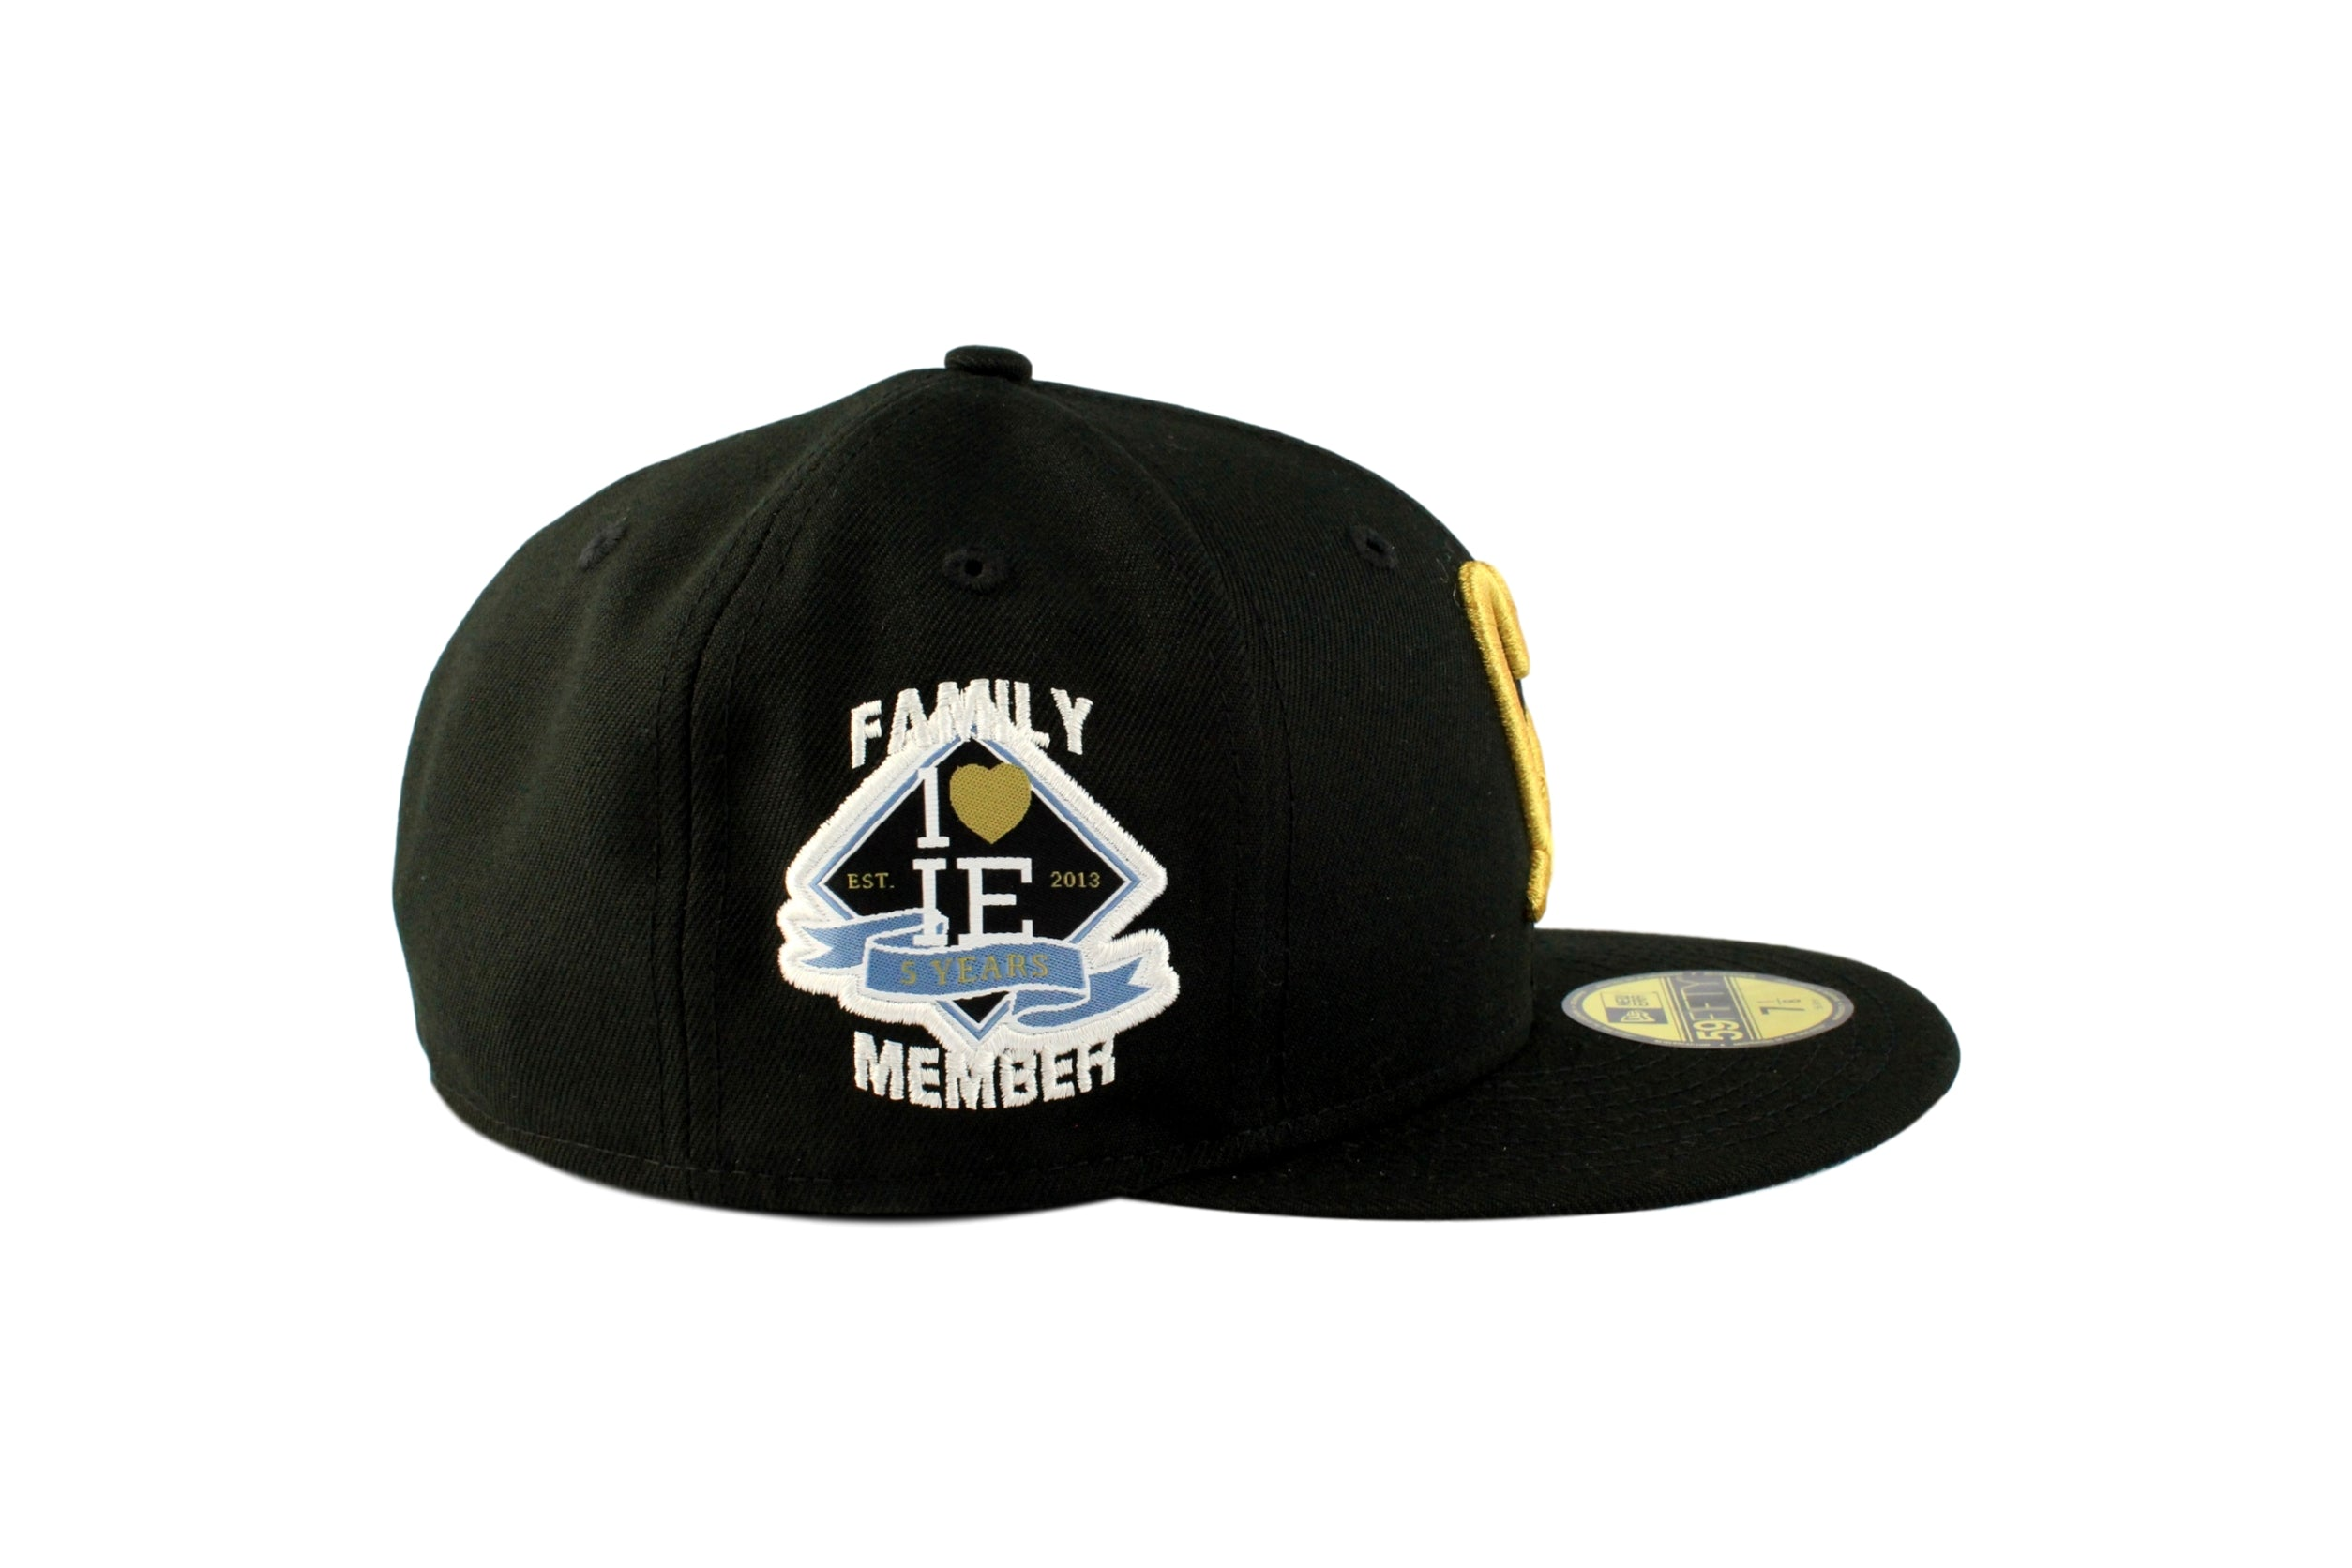 21f7bca58e7 Limited Black   Gold 1LoveIE New Era 59FIFTY Fitted Cap